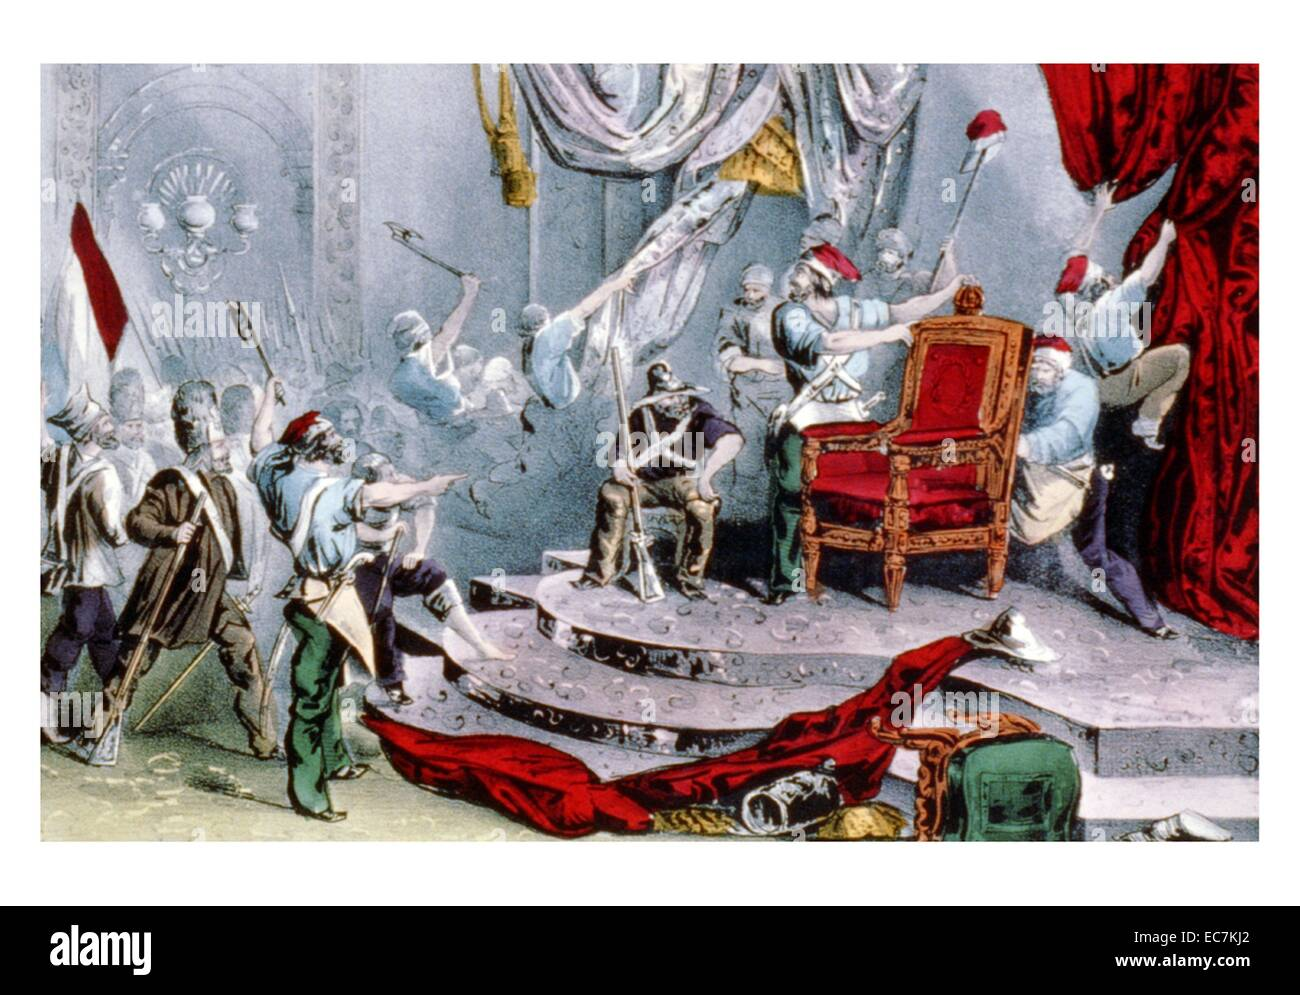 An account for the survival of the third french republic